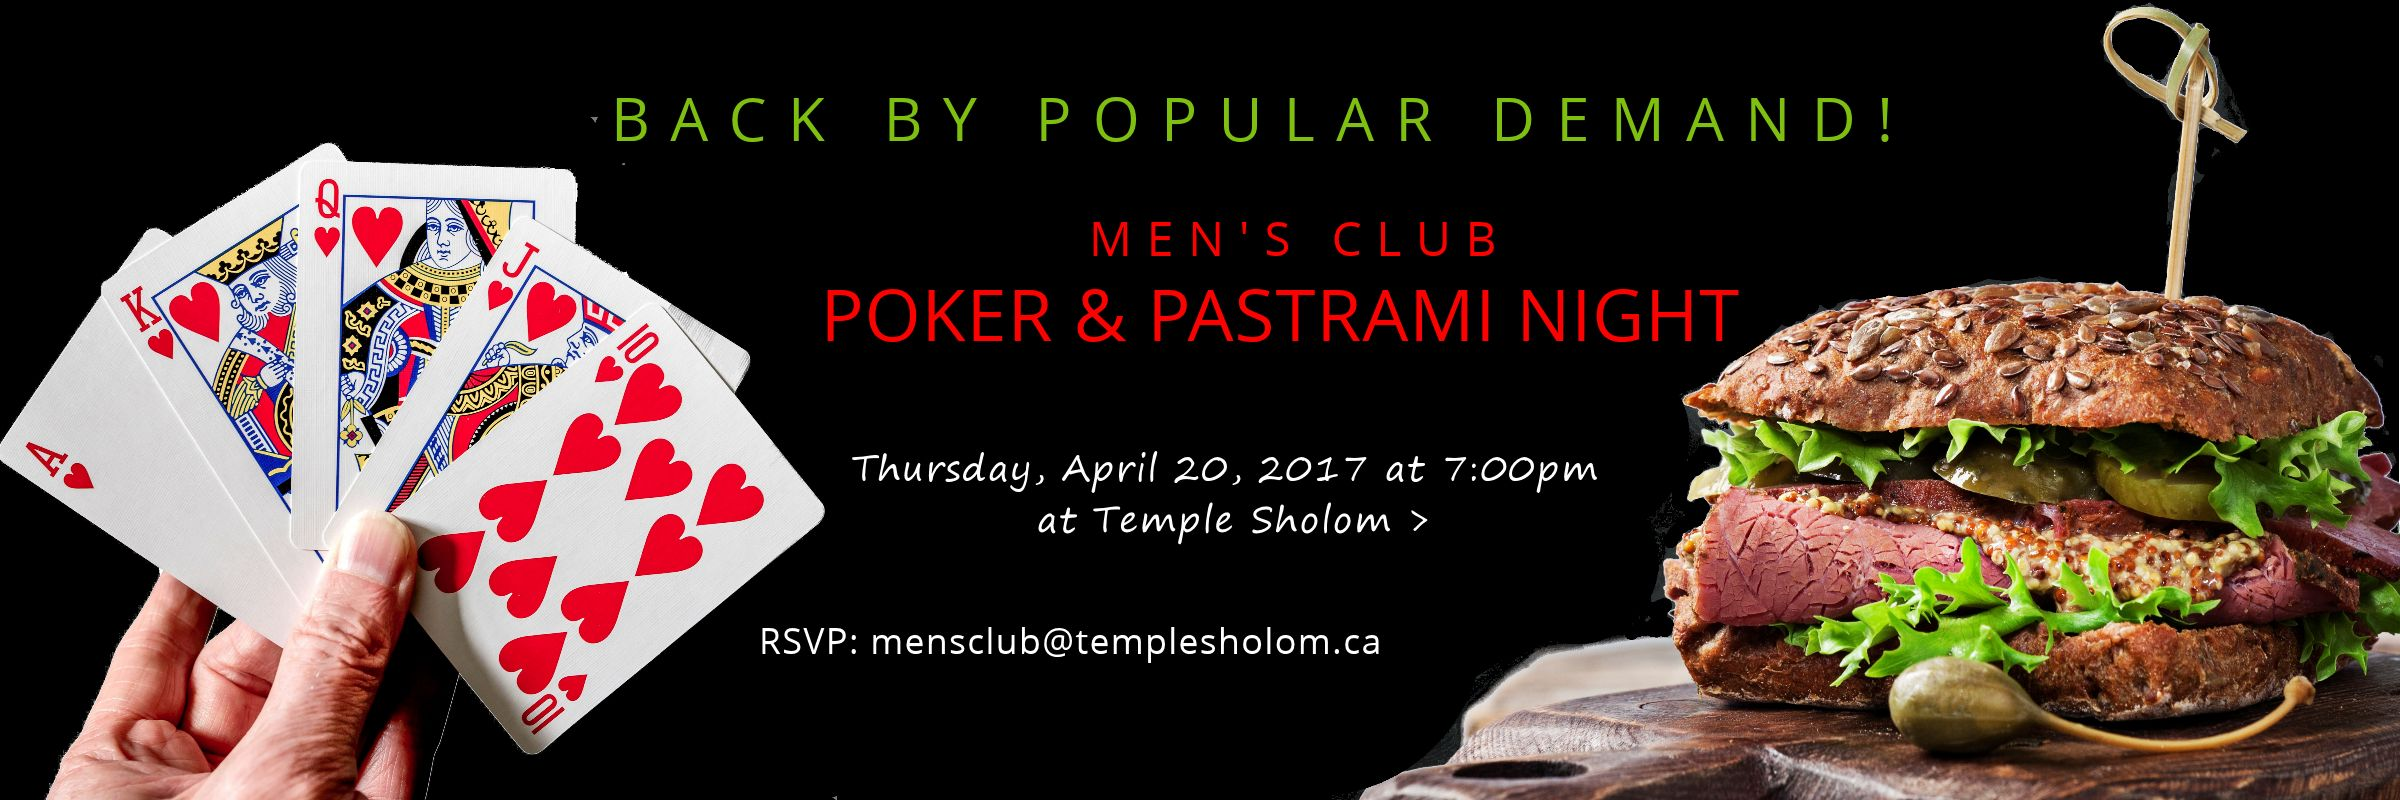 Men's Club Poker & Pastrami Night